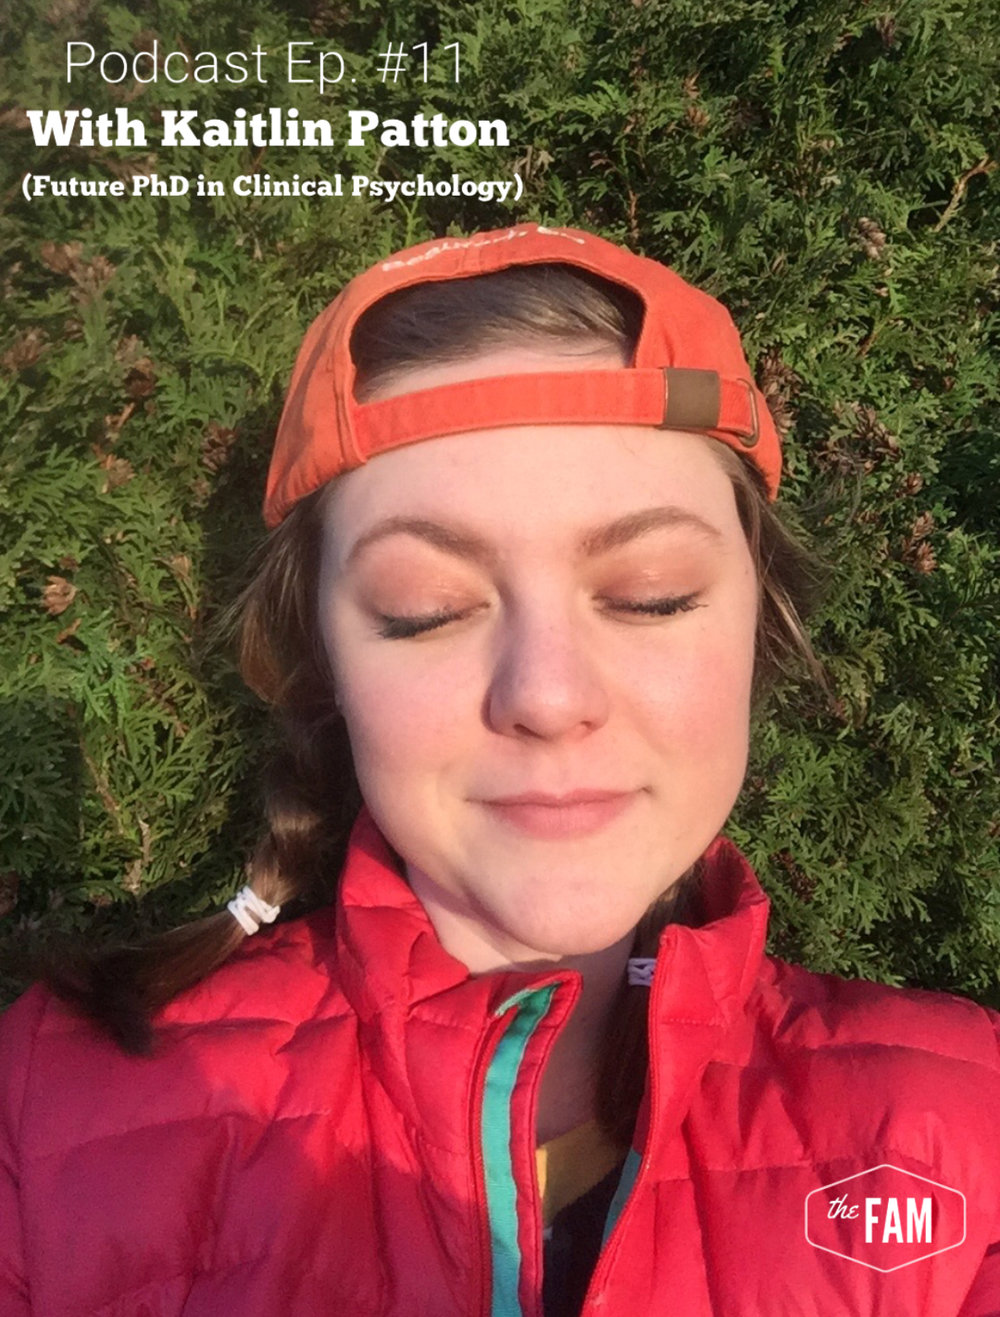 Ep. #11 - Mental Health Pt. 1: The Anxious Athlete - with Kaitlin Patton - Current clinical psychology doctorate student, Kaitlin Patton, unpacks the mental health of an athlete. This episode is focusing on the